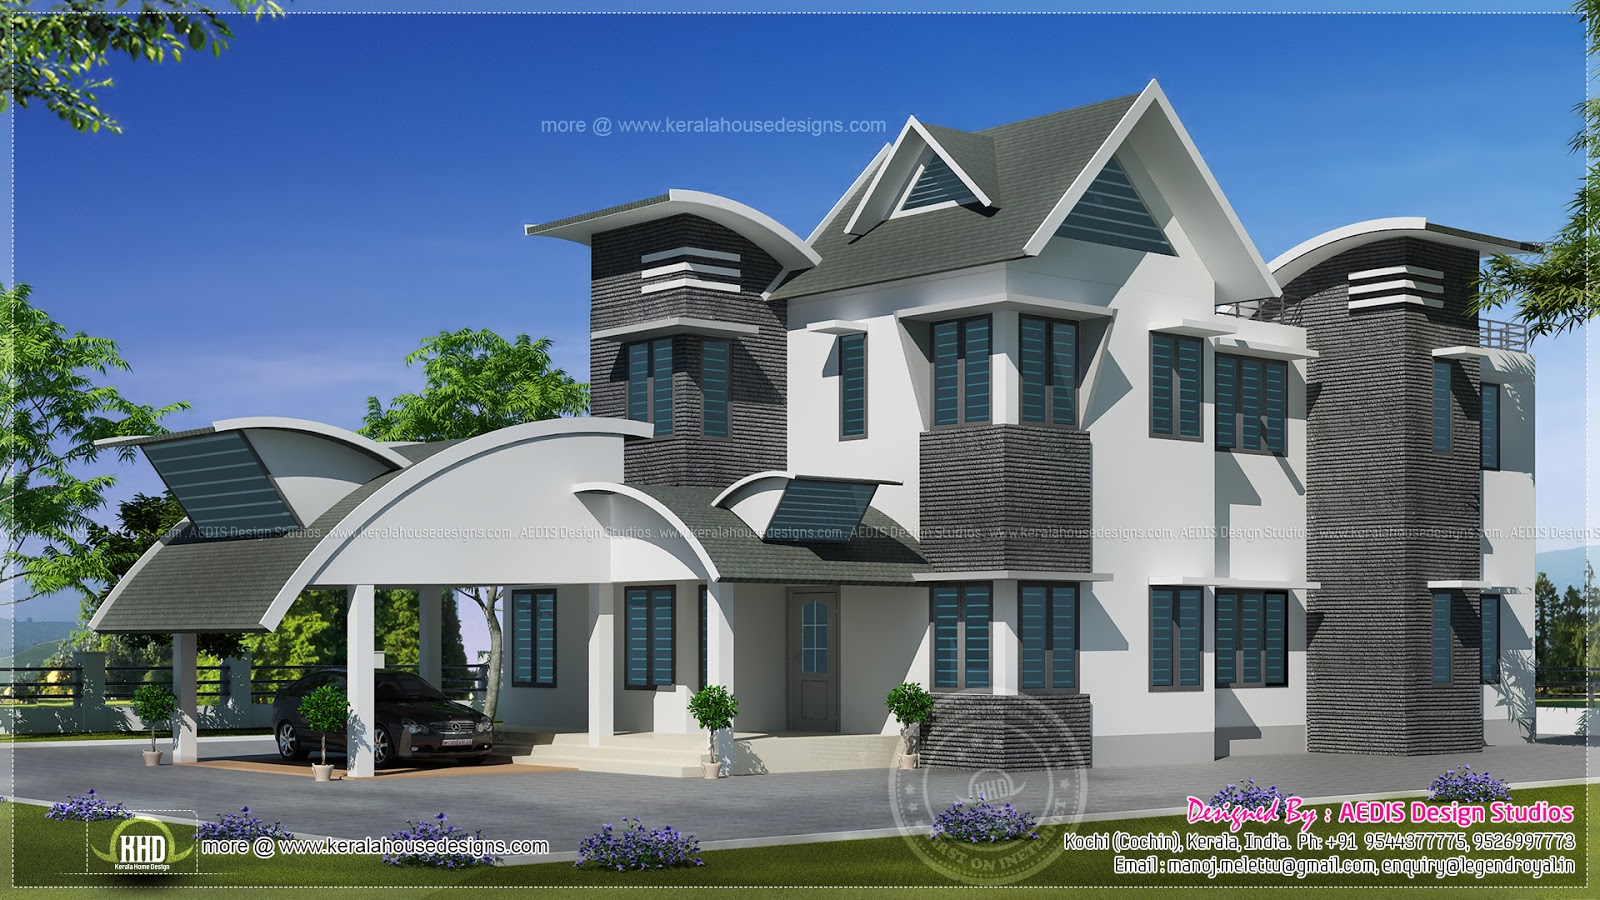 1829 Sq Ft Unique Contemporary Home Design Home Kerala Plans